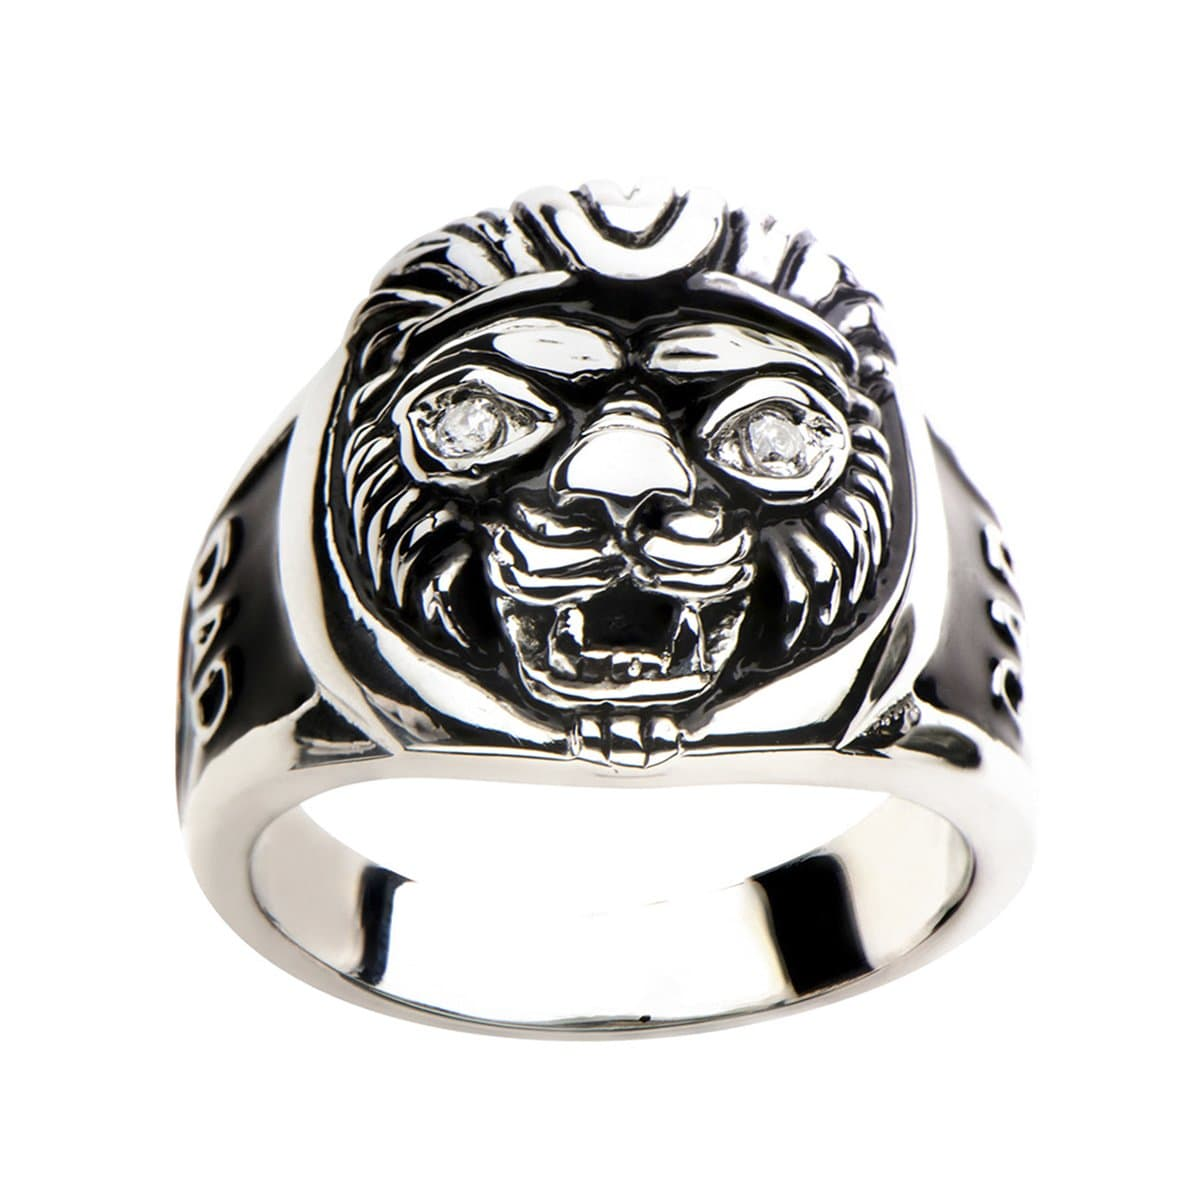 Black & Silver Stainless Steel Lion Head DAD Ring